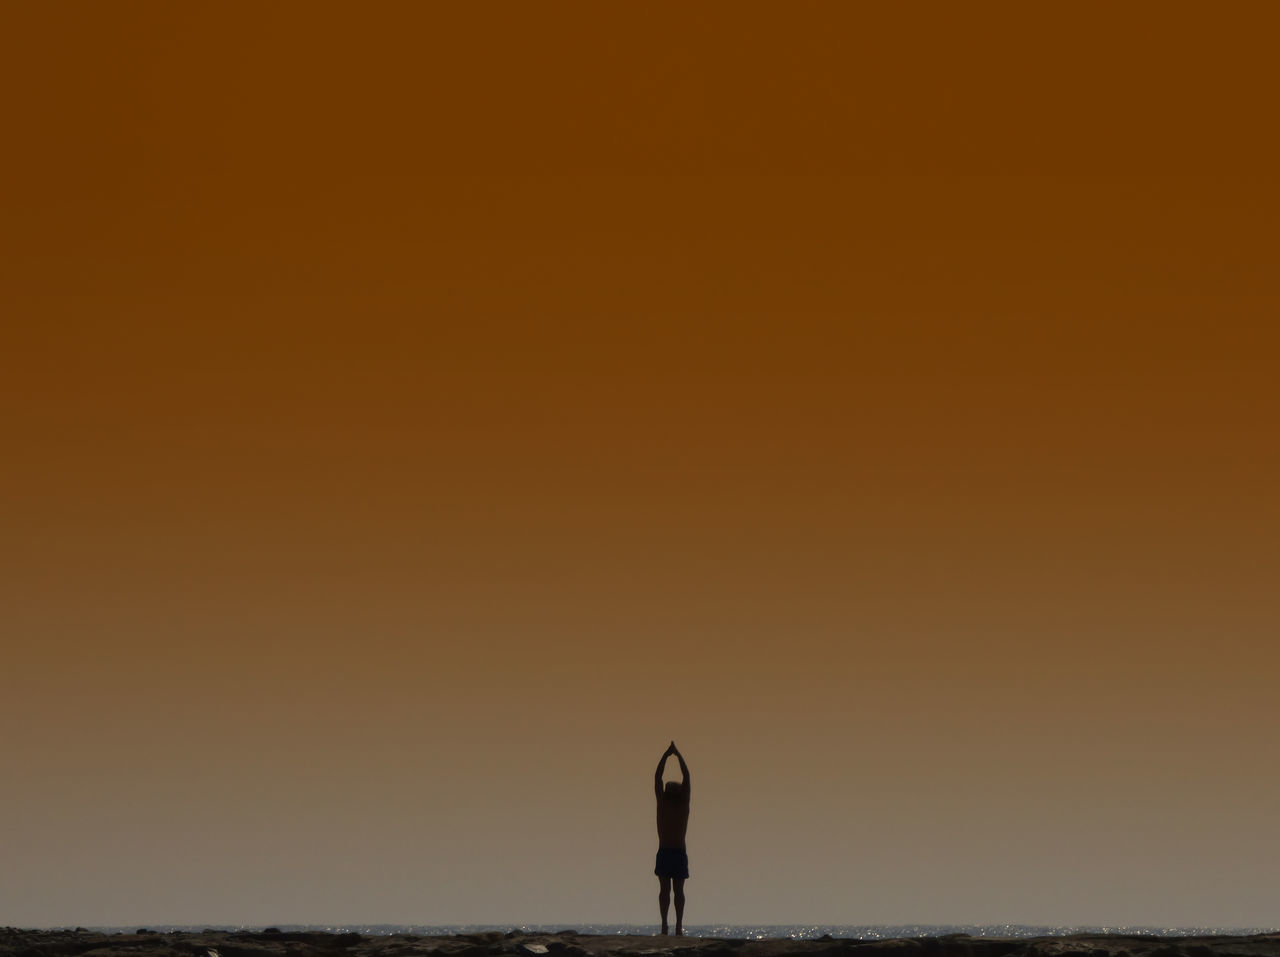 sunset, silhouette, real people, nature, one person, lifestyles, beauty in nature, leisure activity, standing, sea, copy space, outdoors, tranquil scene, scenics, women, tranquility, men, water, sky, horizon over water, full length, clear sky, adult, day, adults only, people